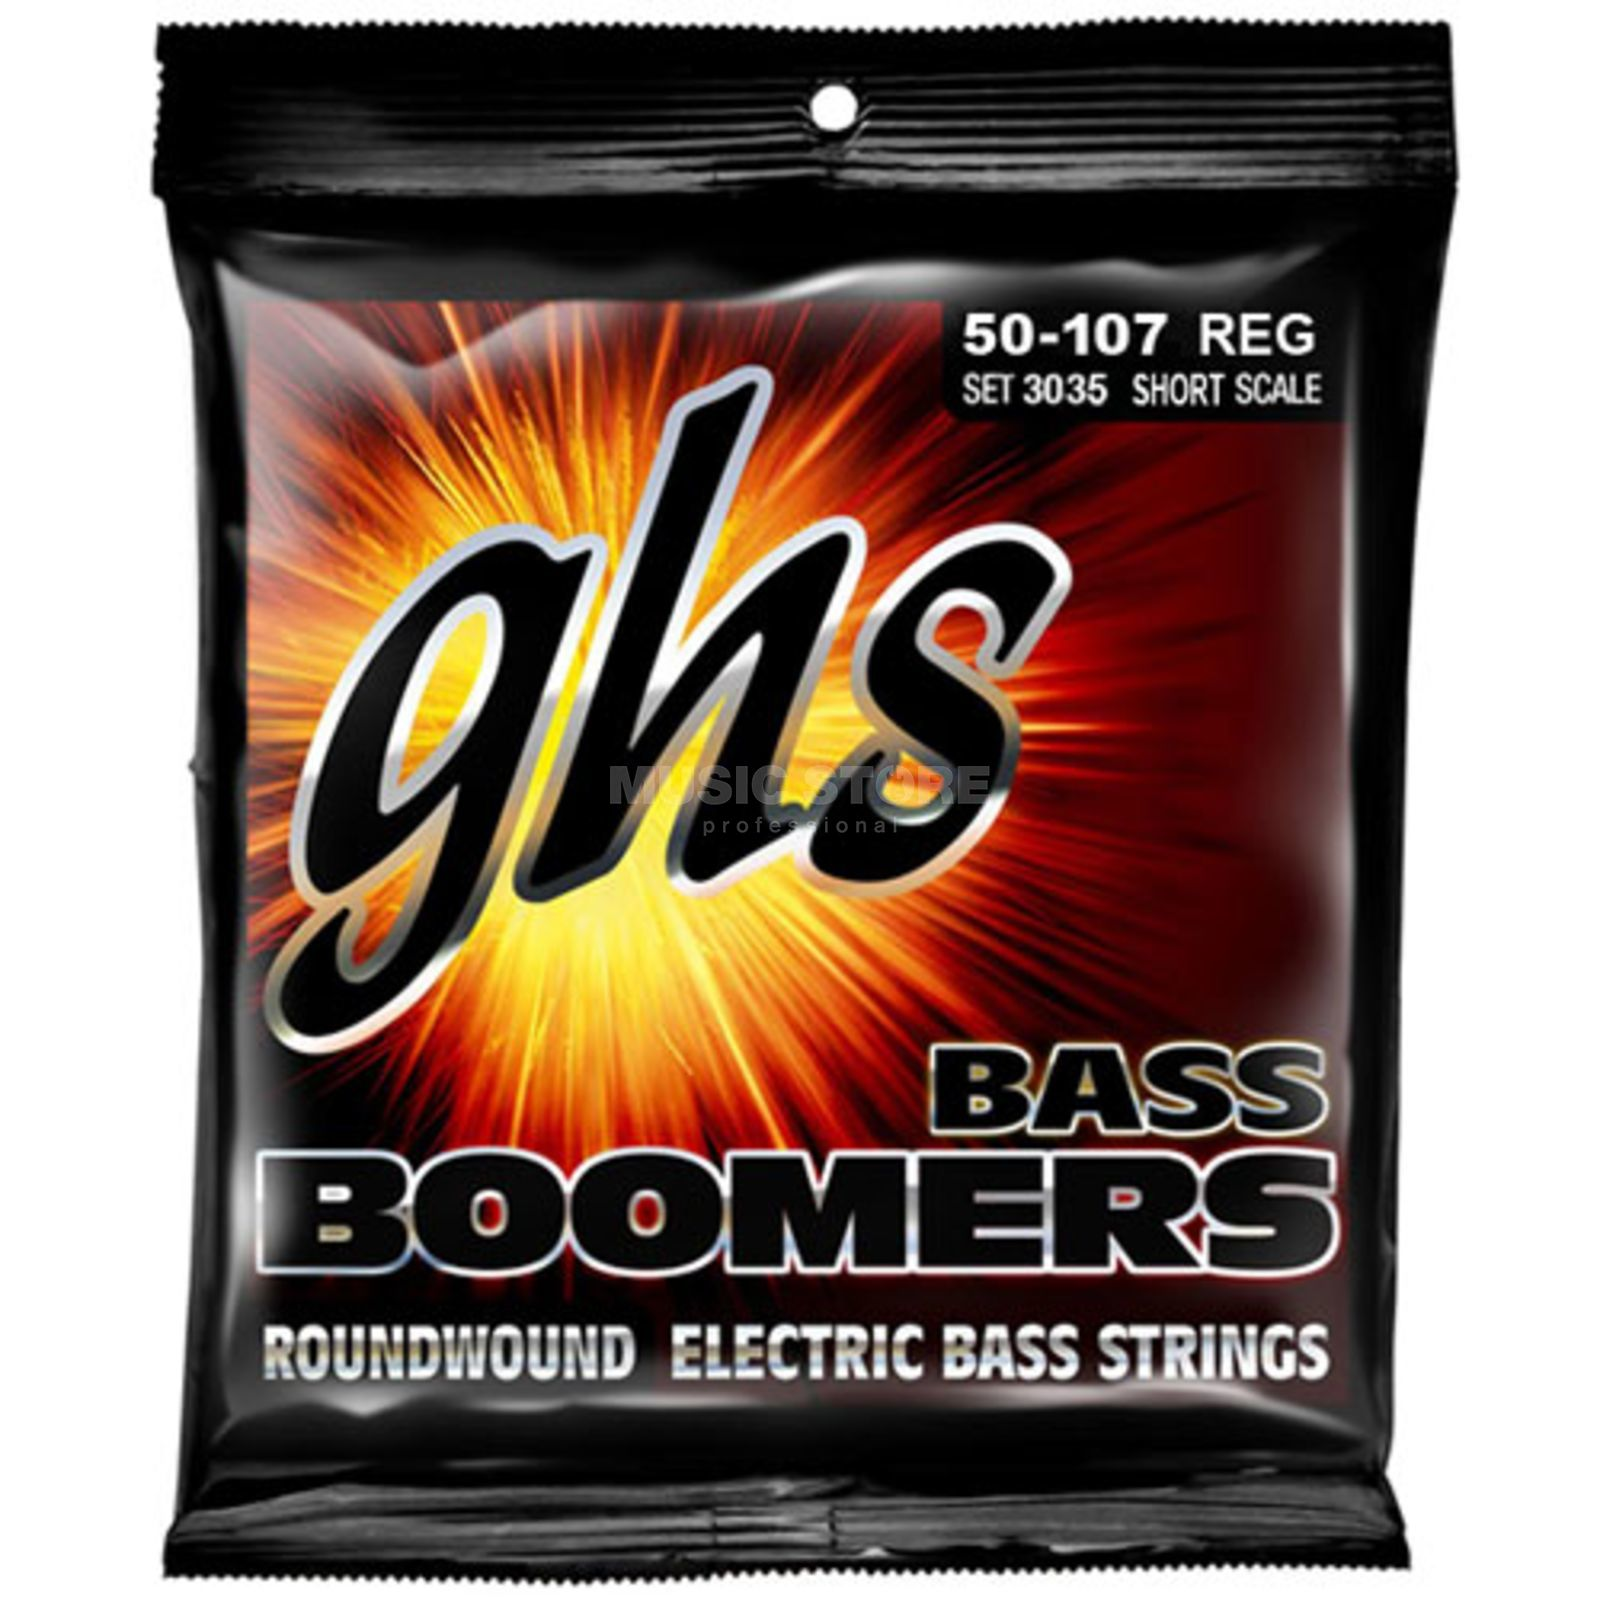 GHS 4 String Bass Boomers 50-107 Short Scale 50-70-90-107 Product Image